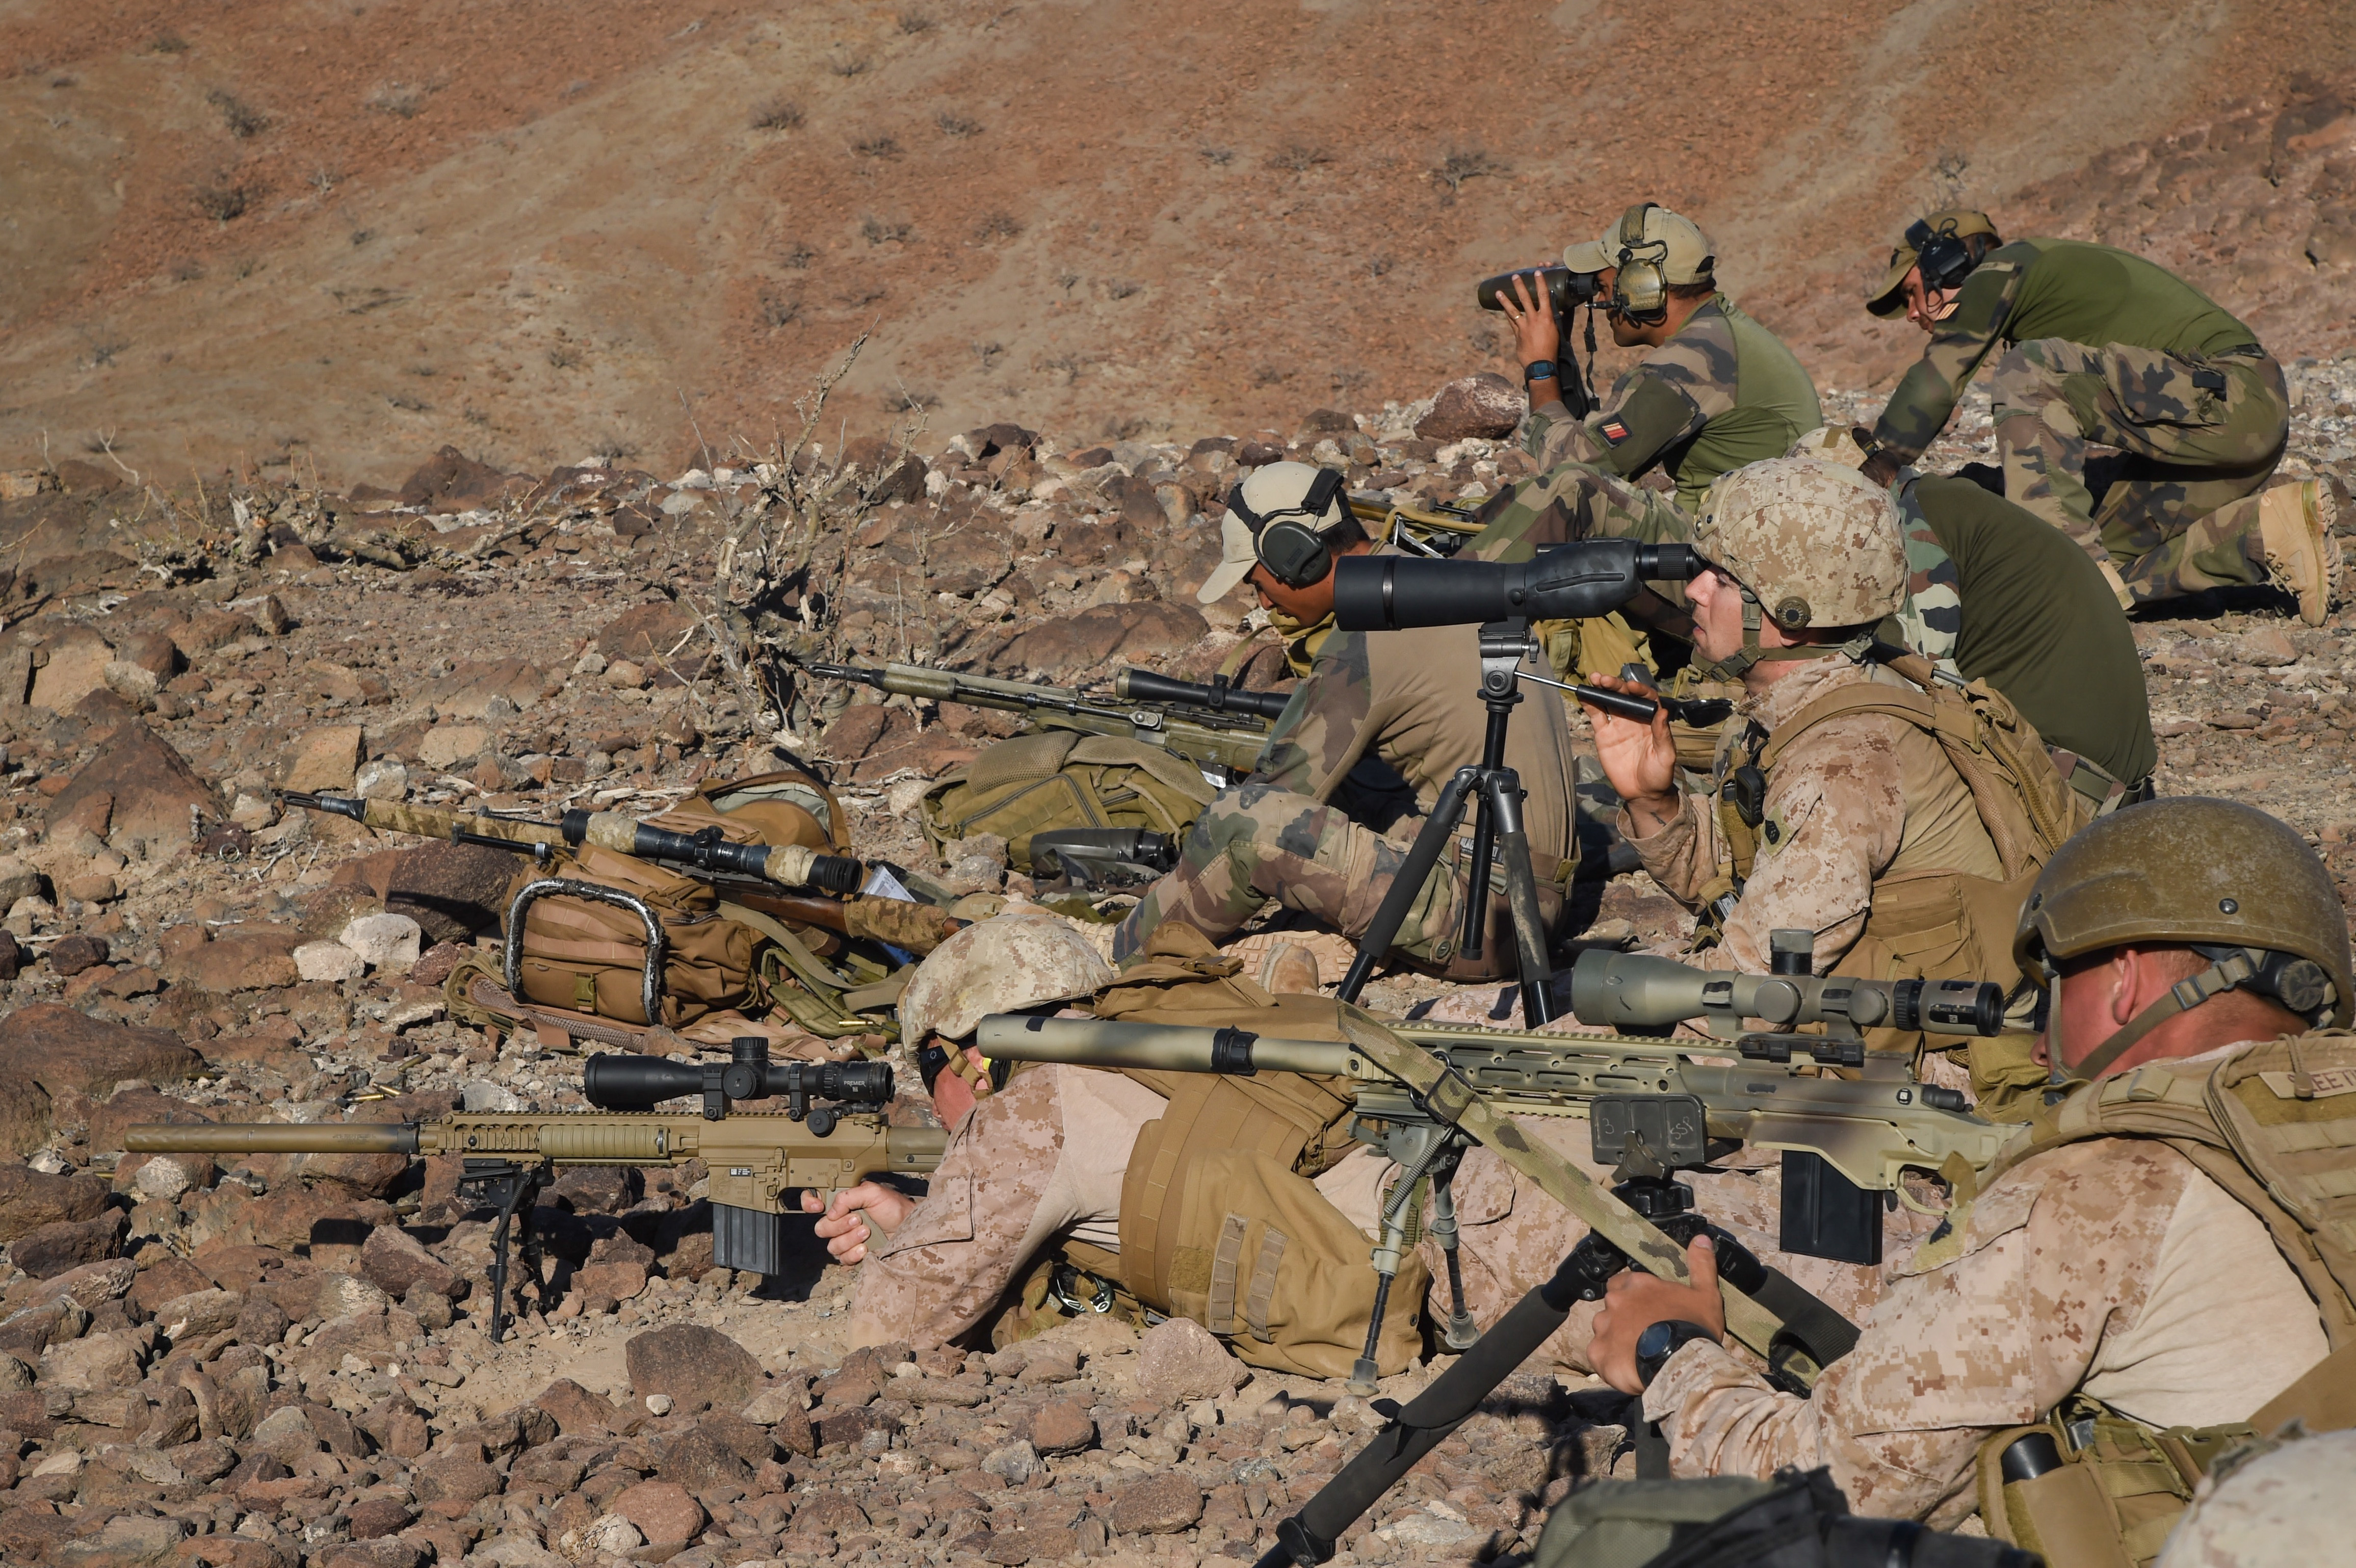 U.S. Marine Corps 2nd Lt. Joshua Gray, Scout Sniper Platoon, Battalion Landing Team 1st Battalion, 4th Marines, 11th Marine Expeditionary Unit (MEU), speaks with the 3rd Infantry French Marines' Sniper Platoon during exercise Alligator Dagger, Dec. 13, 2016, at Arta Plage, Djibouti. The Marines participated in an unknown distance course as a part of bilateral training with the French. The exercise allows opportunities for the 11th MEU to maintain their respective skills and proficiencies. (U.S. Air National Guard photo by Staff Sgt. Penny Snoozy)